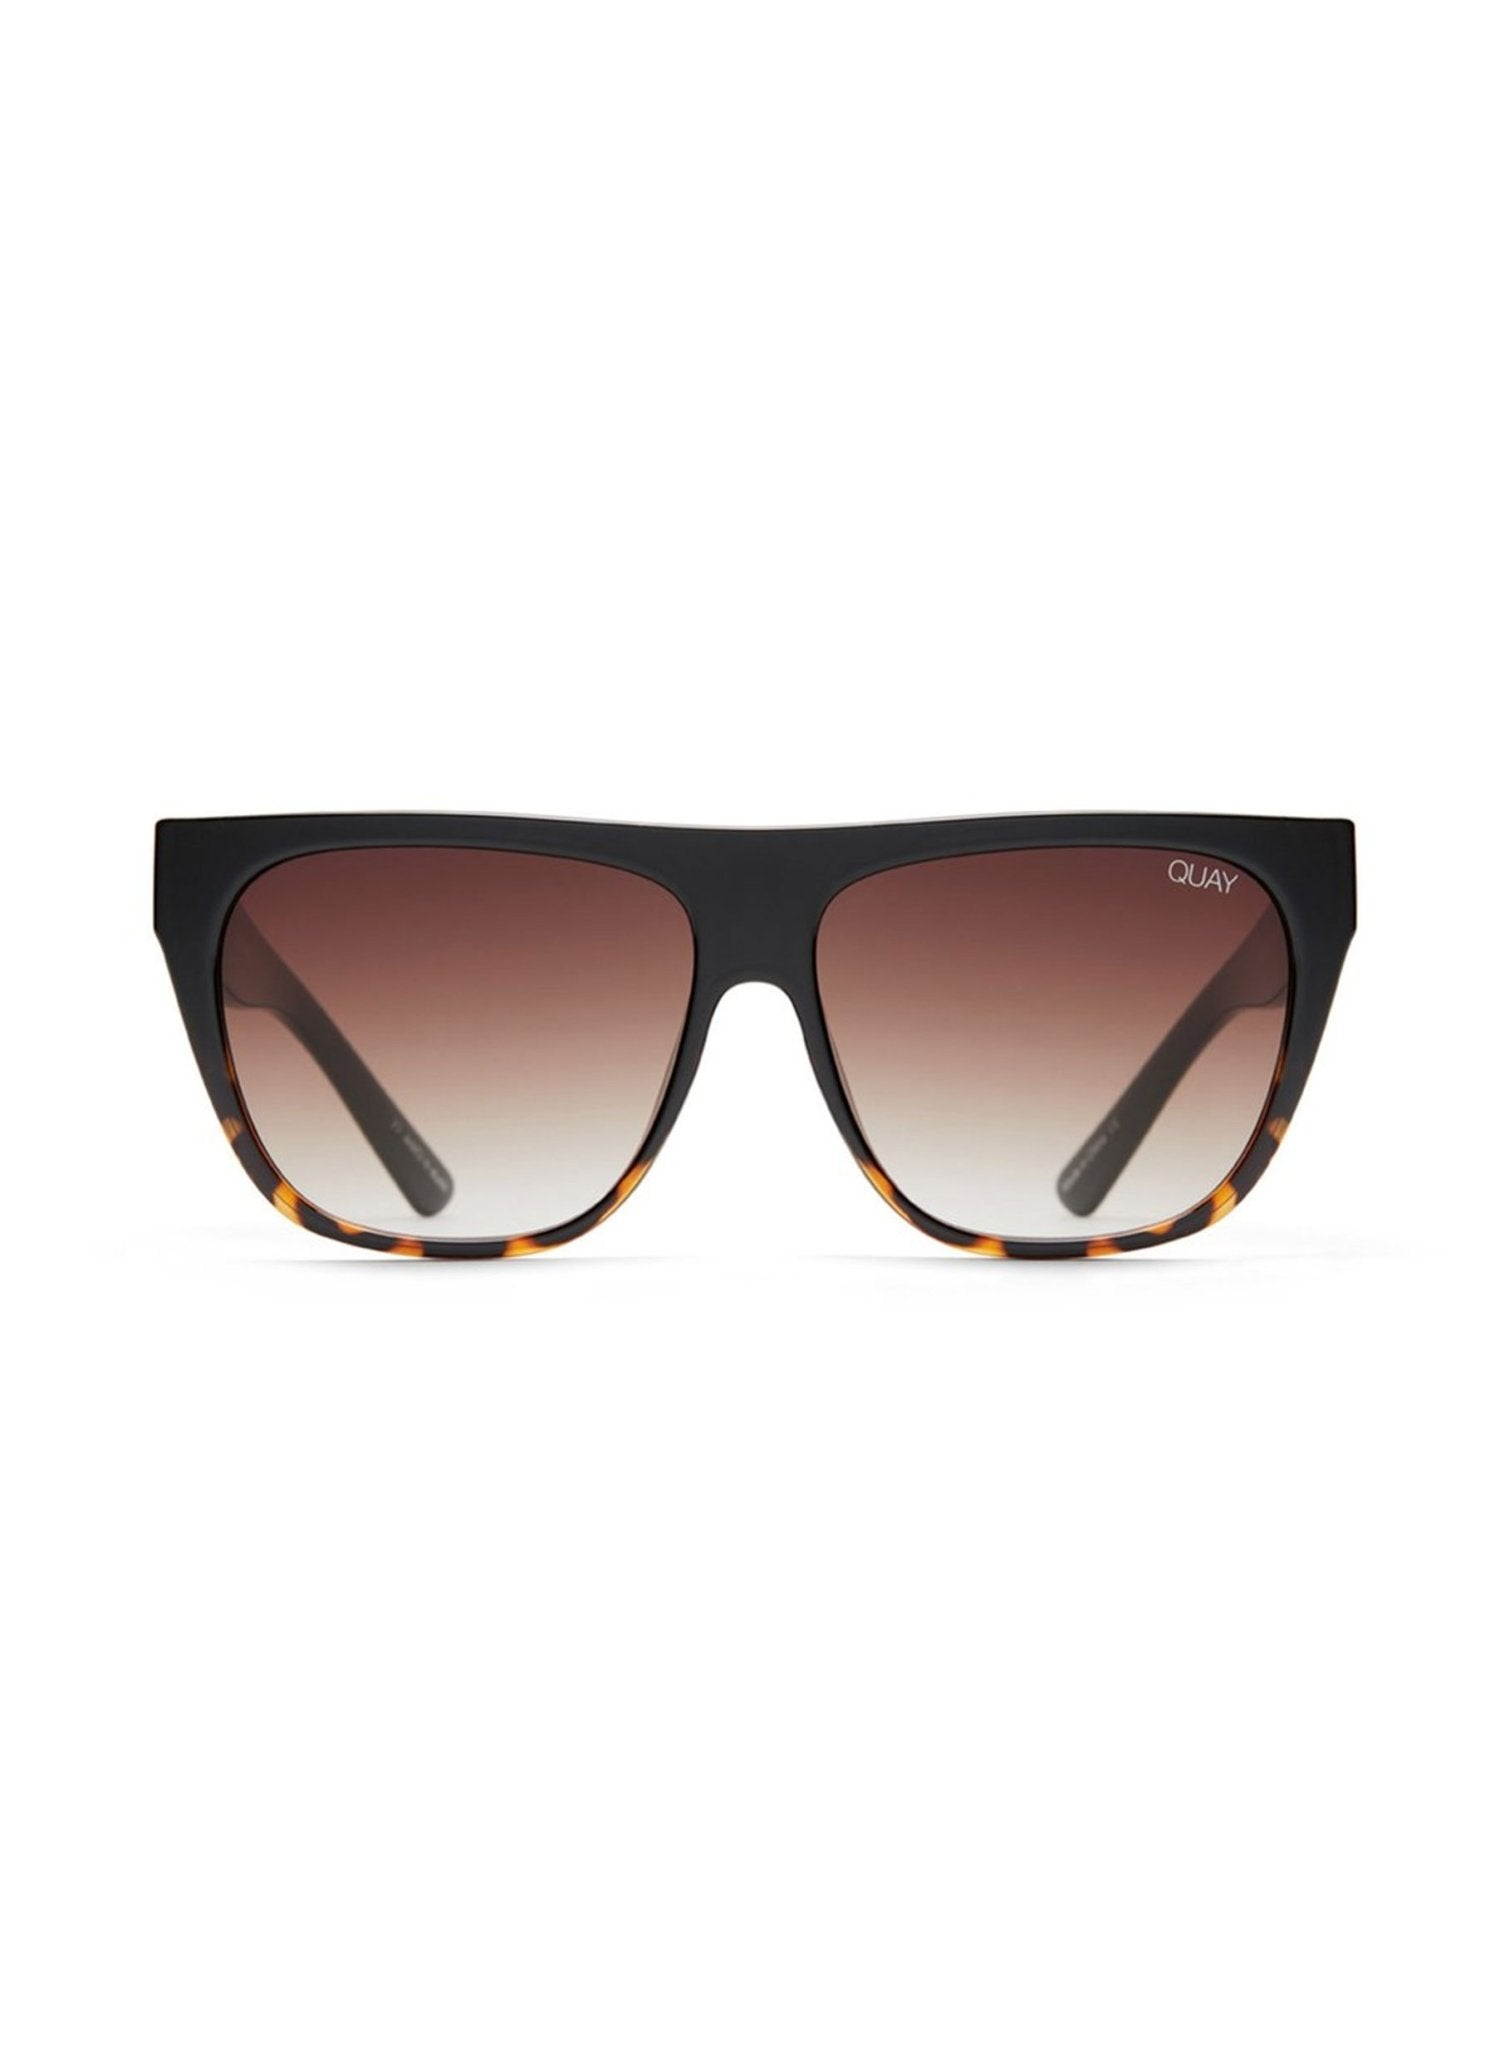 Quay Drama By Day Sunglasses - Salty Mermaid Swim